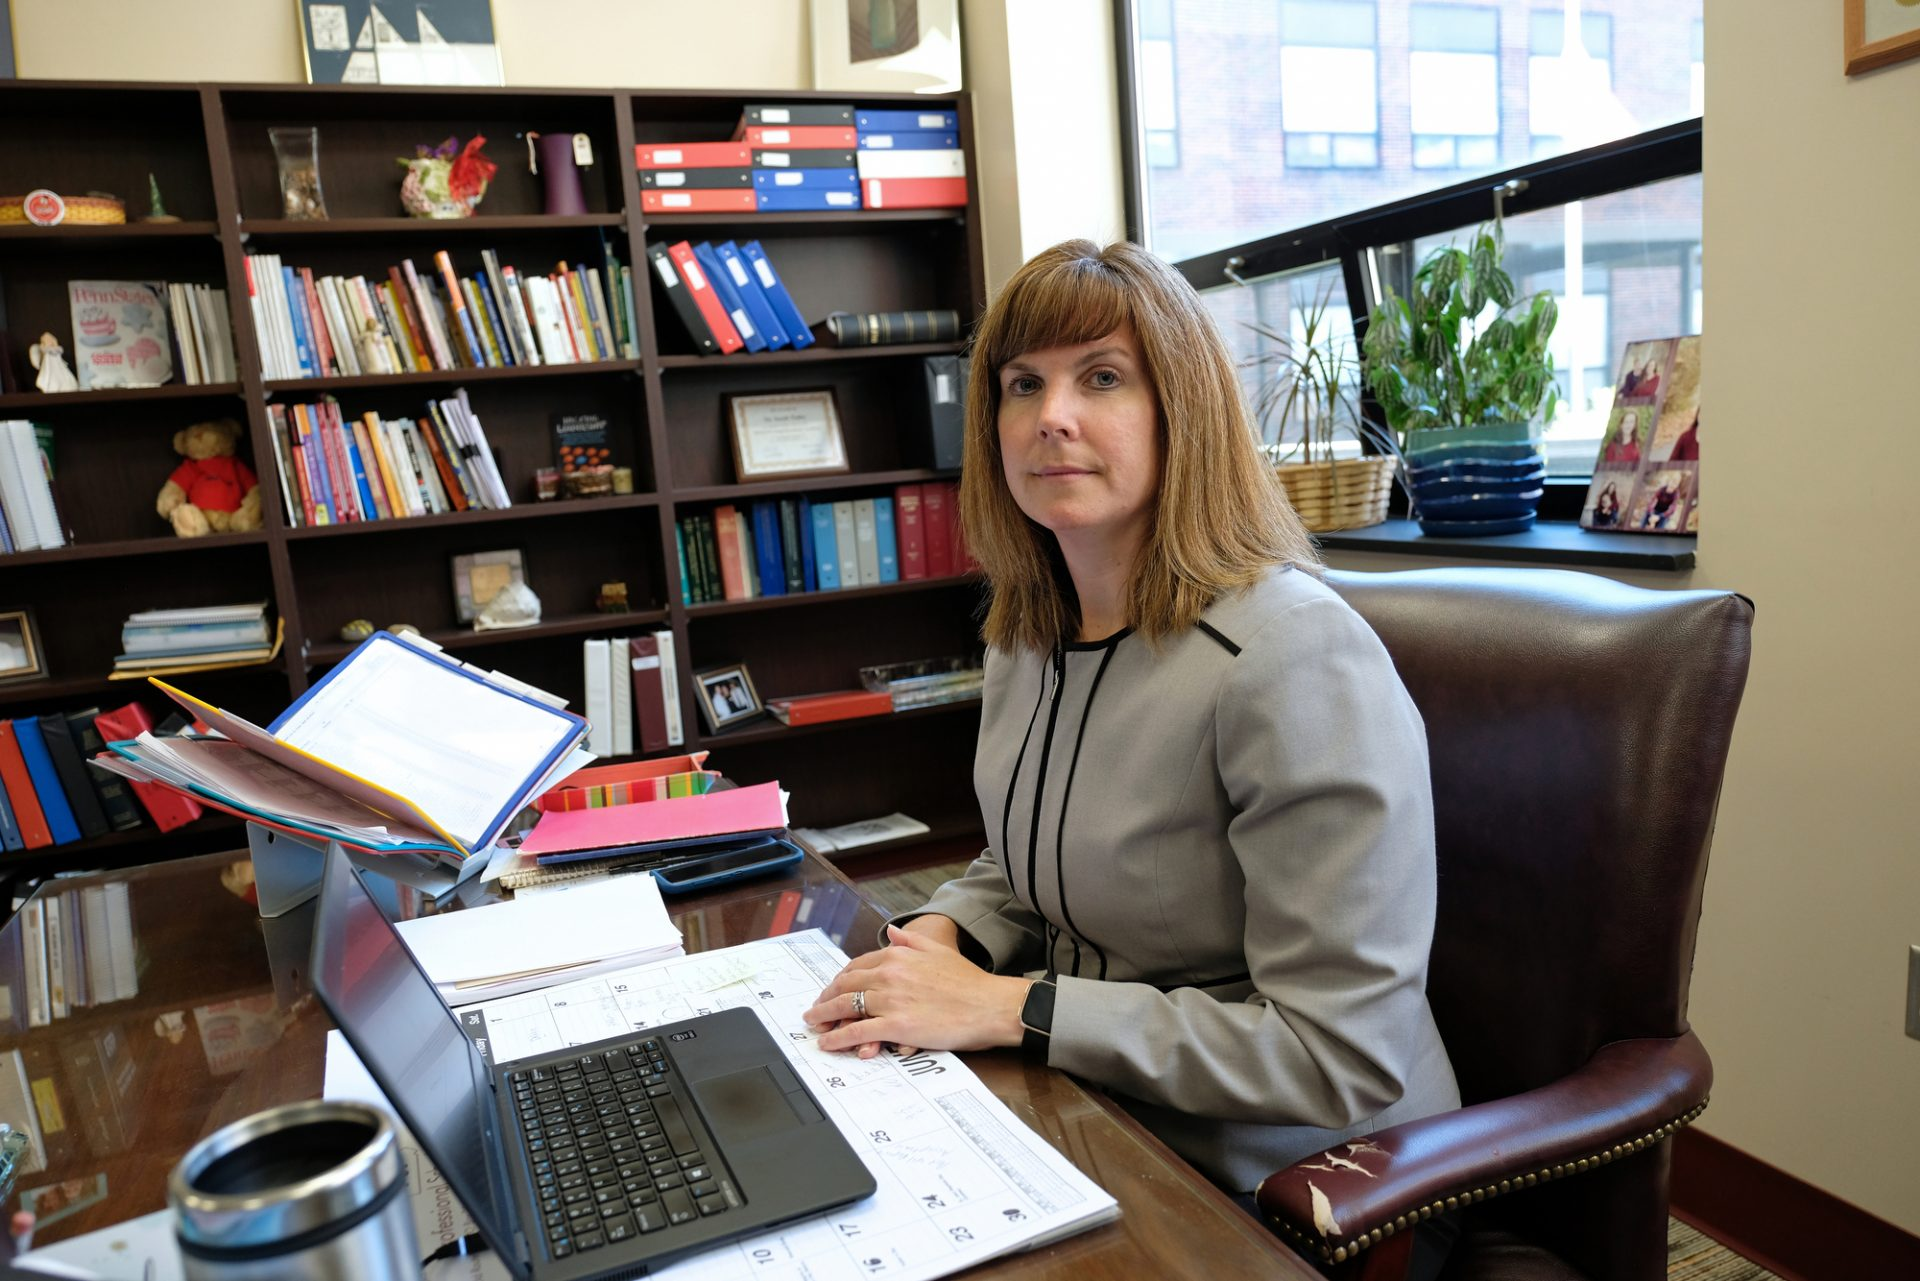 Saint Clair School District Superintendent Sarah Yoder poses while in her office June 11, 2019, during an interview about parents in her district using cyber charter schools as a way to avoid truancy issues. Yoder also spoke of the roles schools play in providing a daily welfare check on students with troubled or volatile home situations.